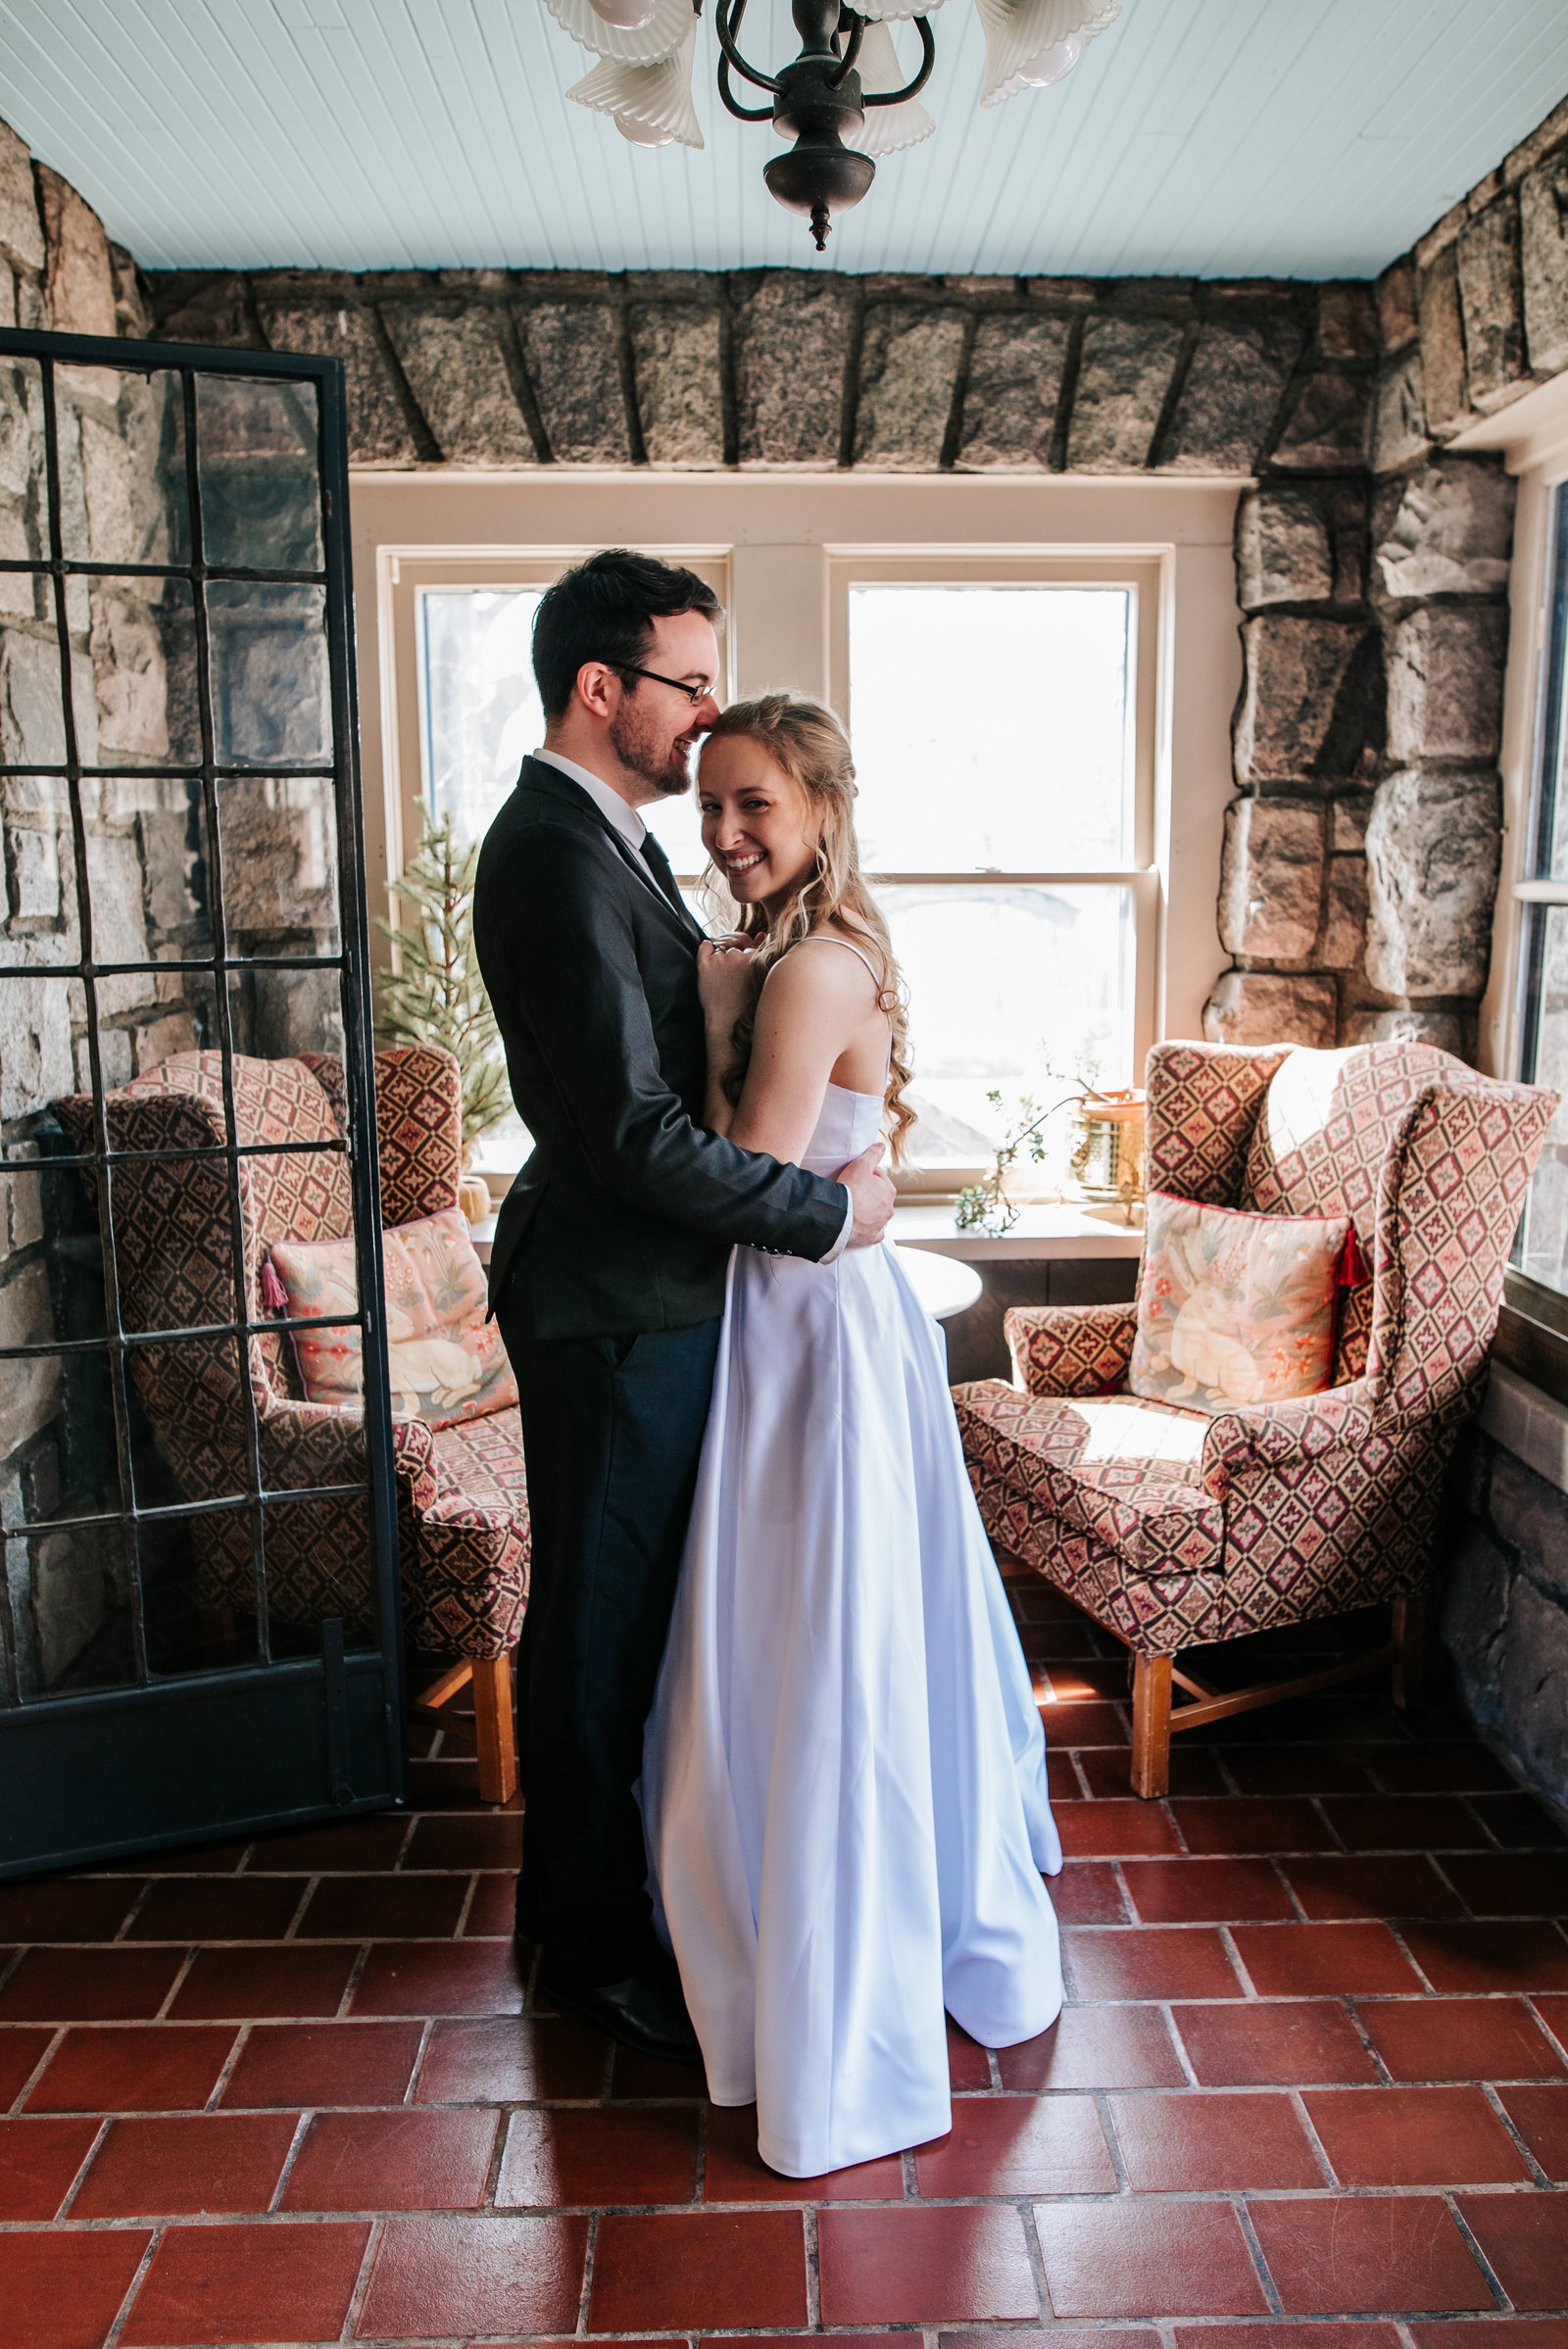 MichiganWeddingPhotographer, Ann Arbor Wedding, Stone Chalet Elopement Wedding